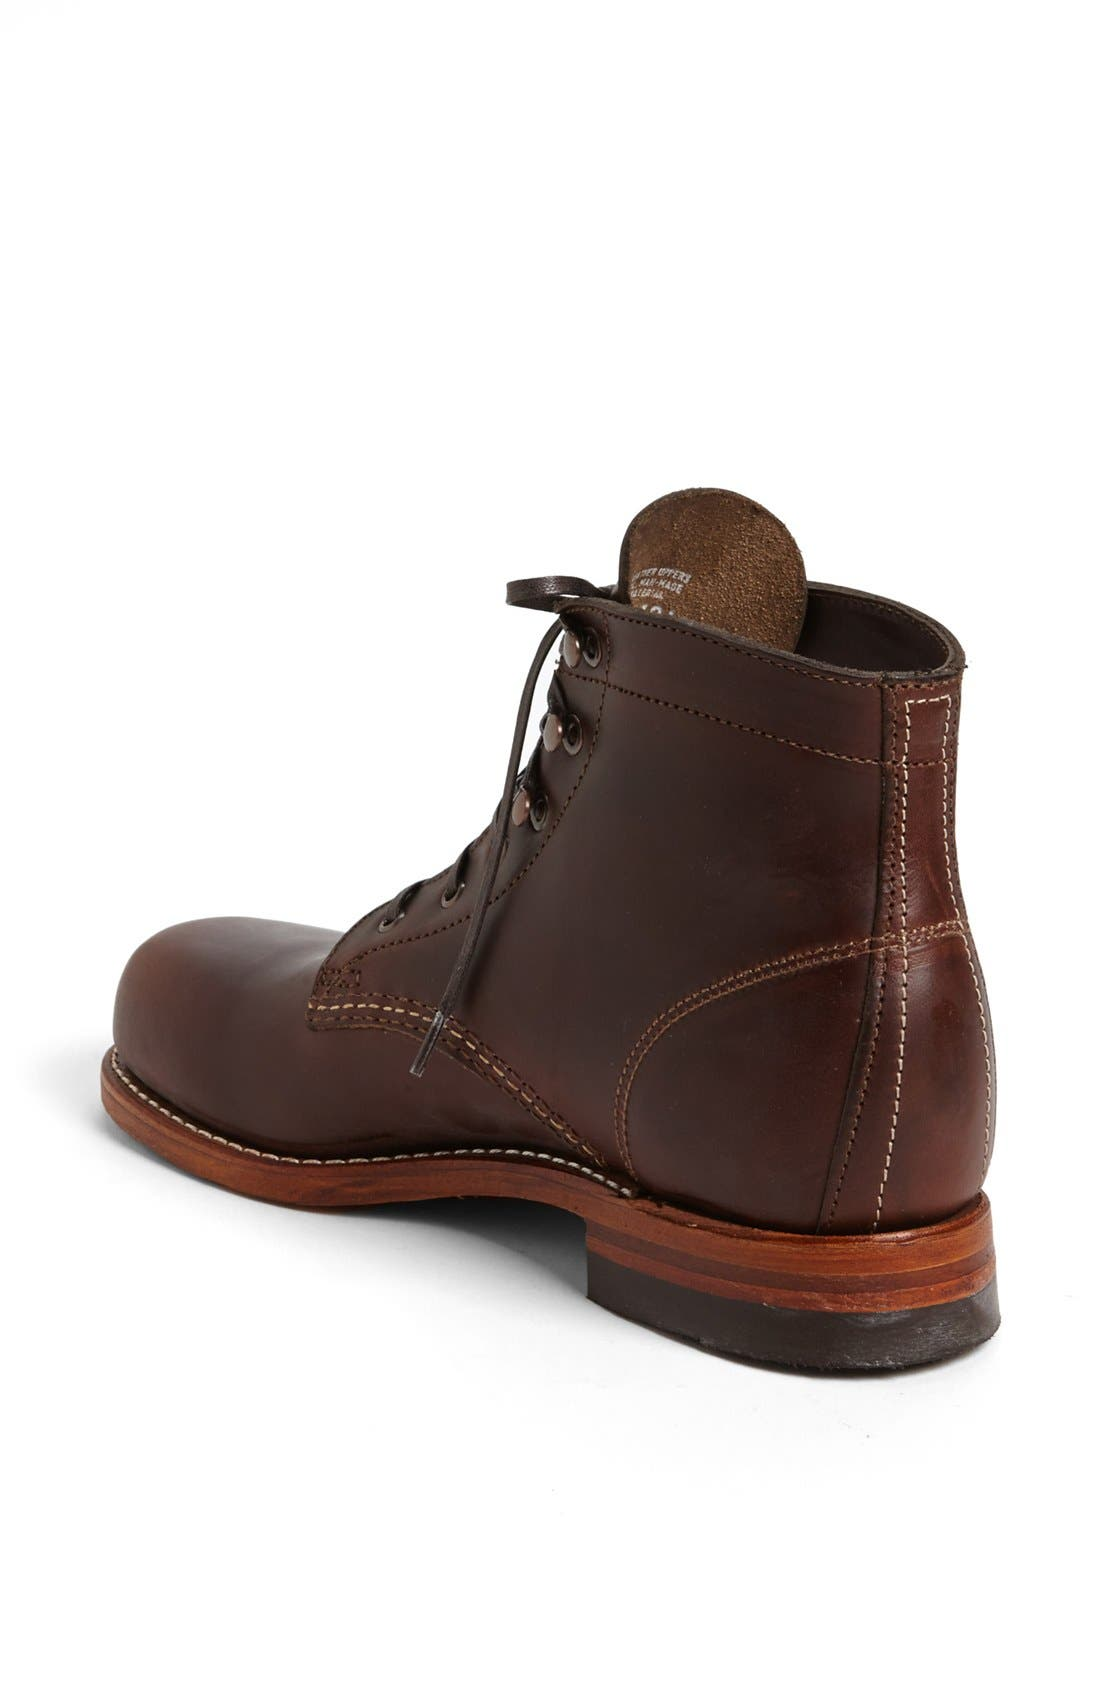 Alternate Image 2  - Wolverine '1000 Mile' Leather Boot (Women)